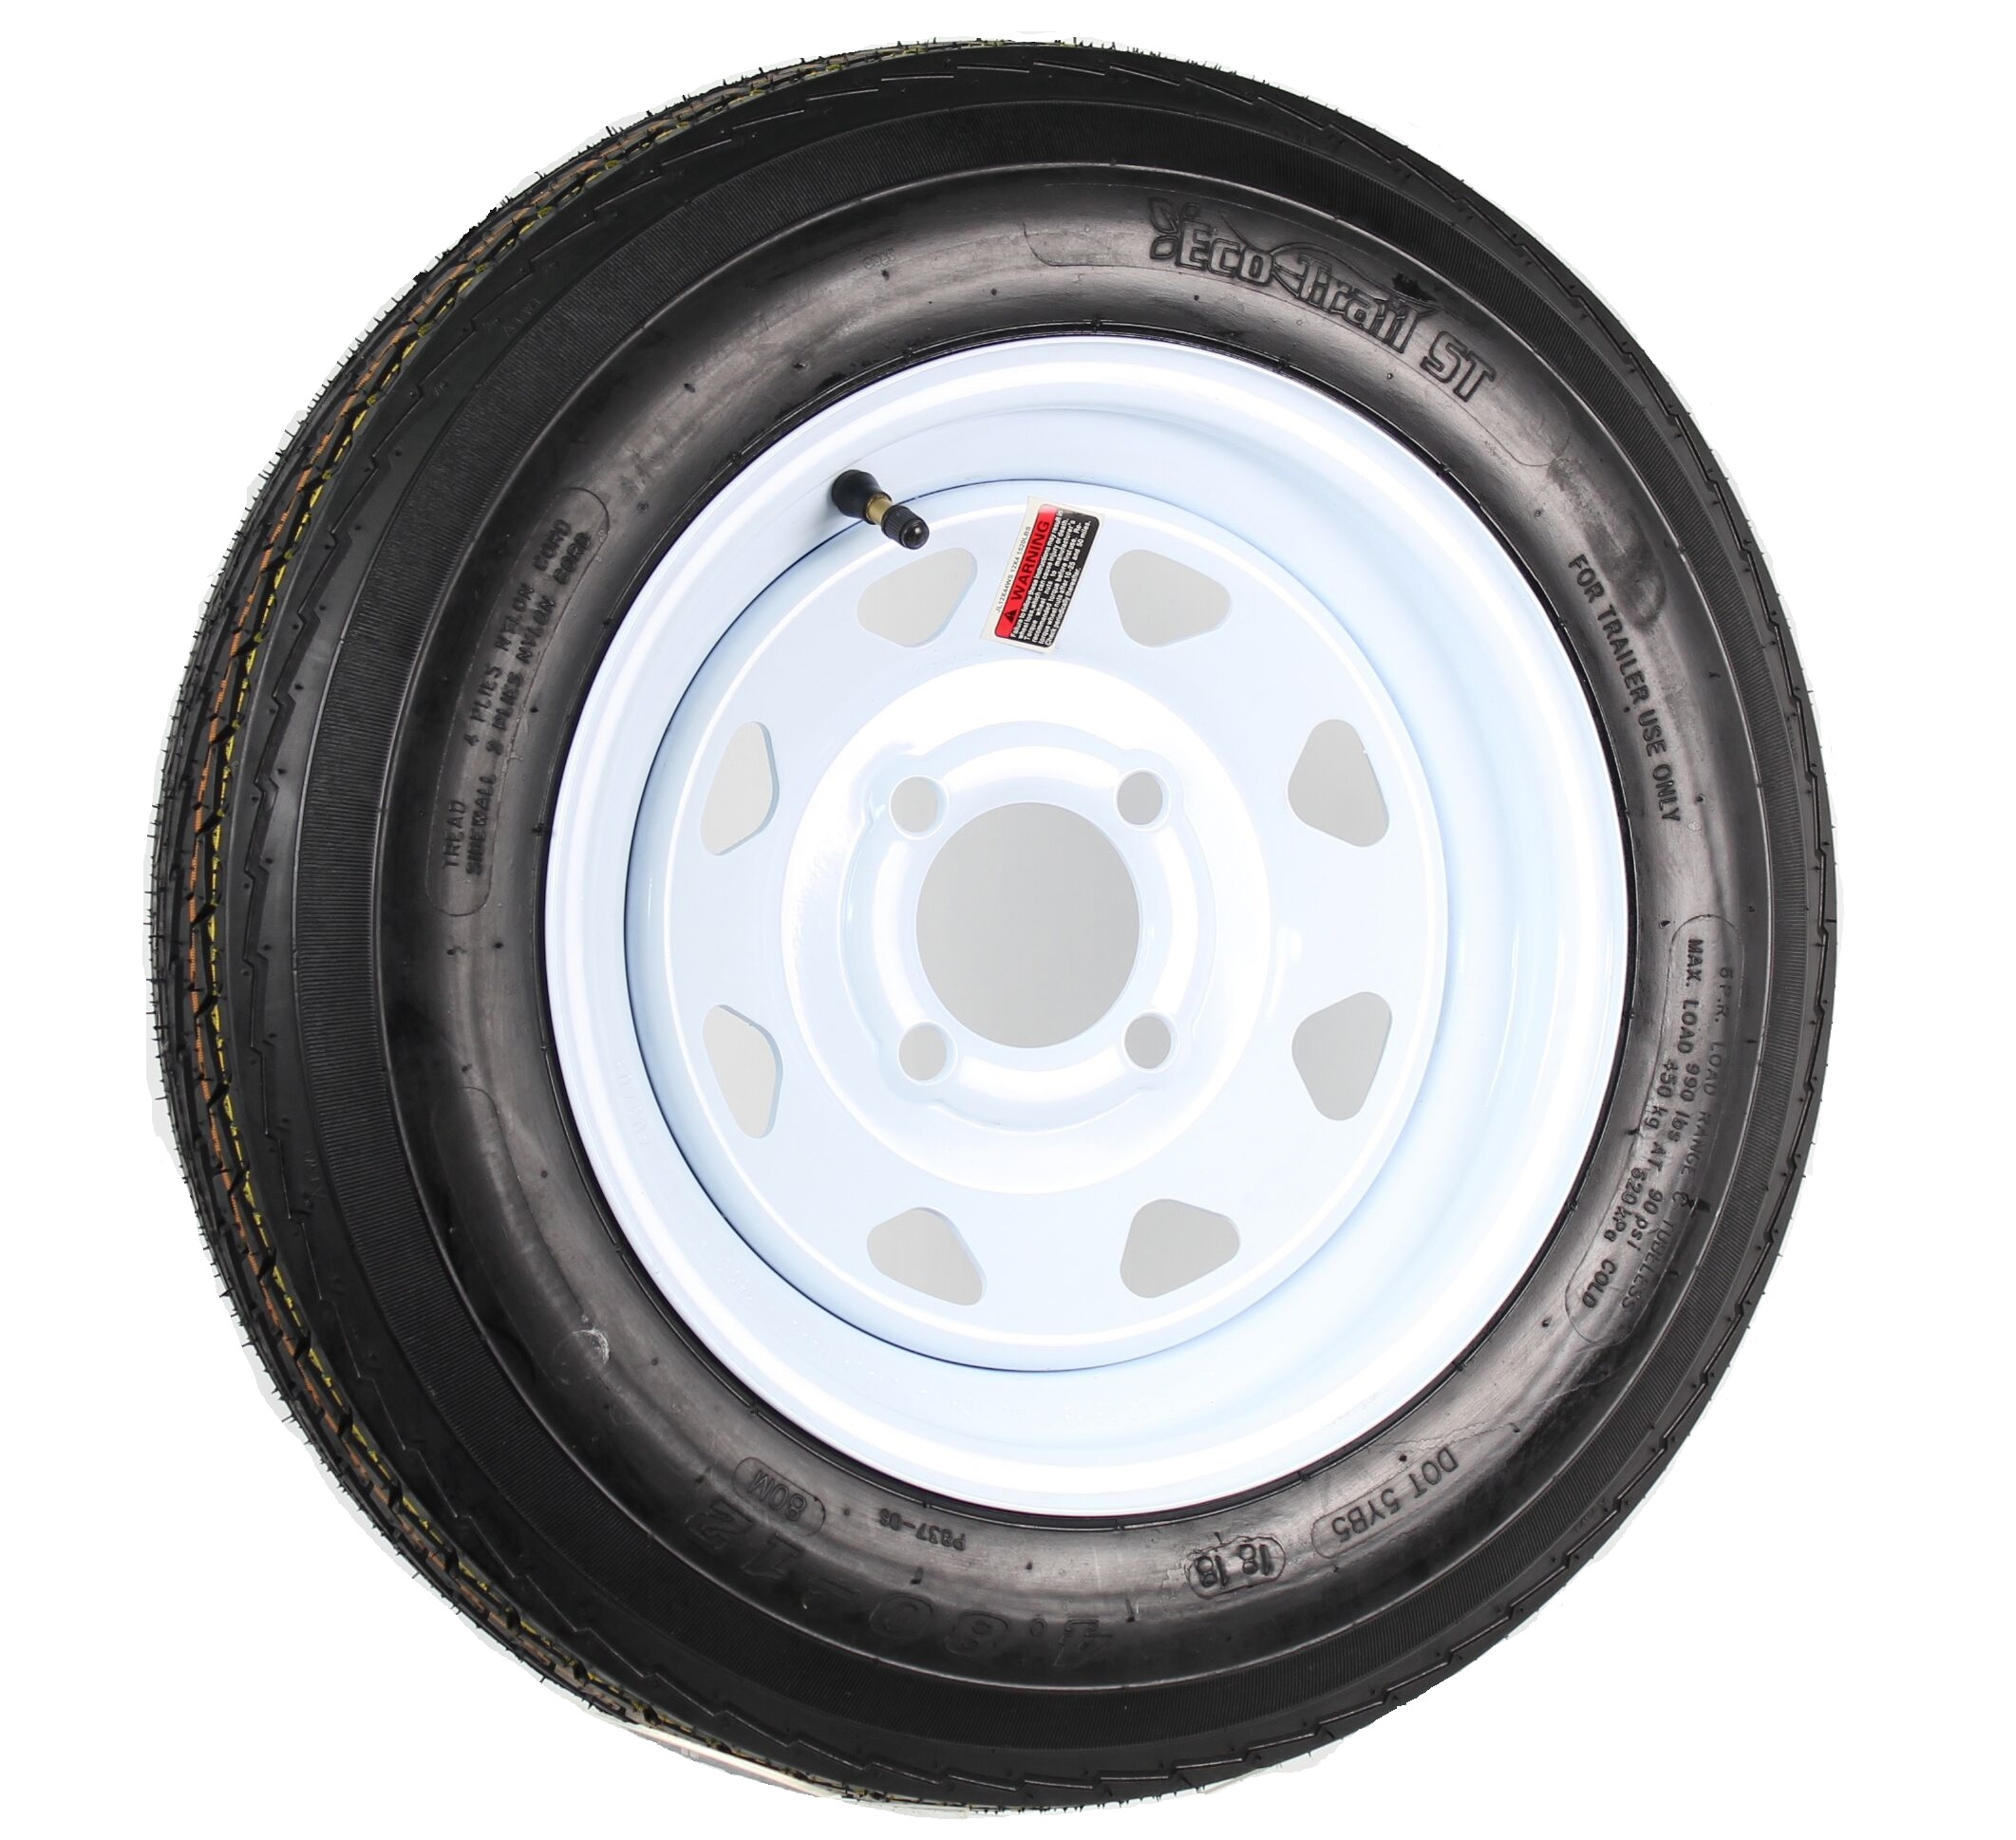 LRB 5 Lug Wheel White Spoke Trailer Tire On Rim 4.80-12 480-12 4.80 X 12 12 in